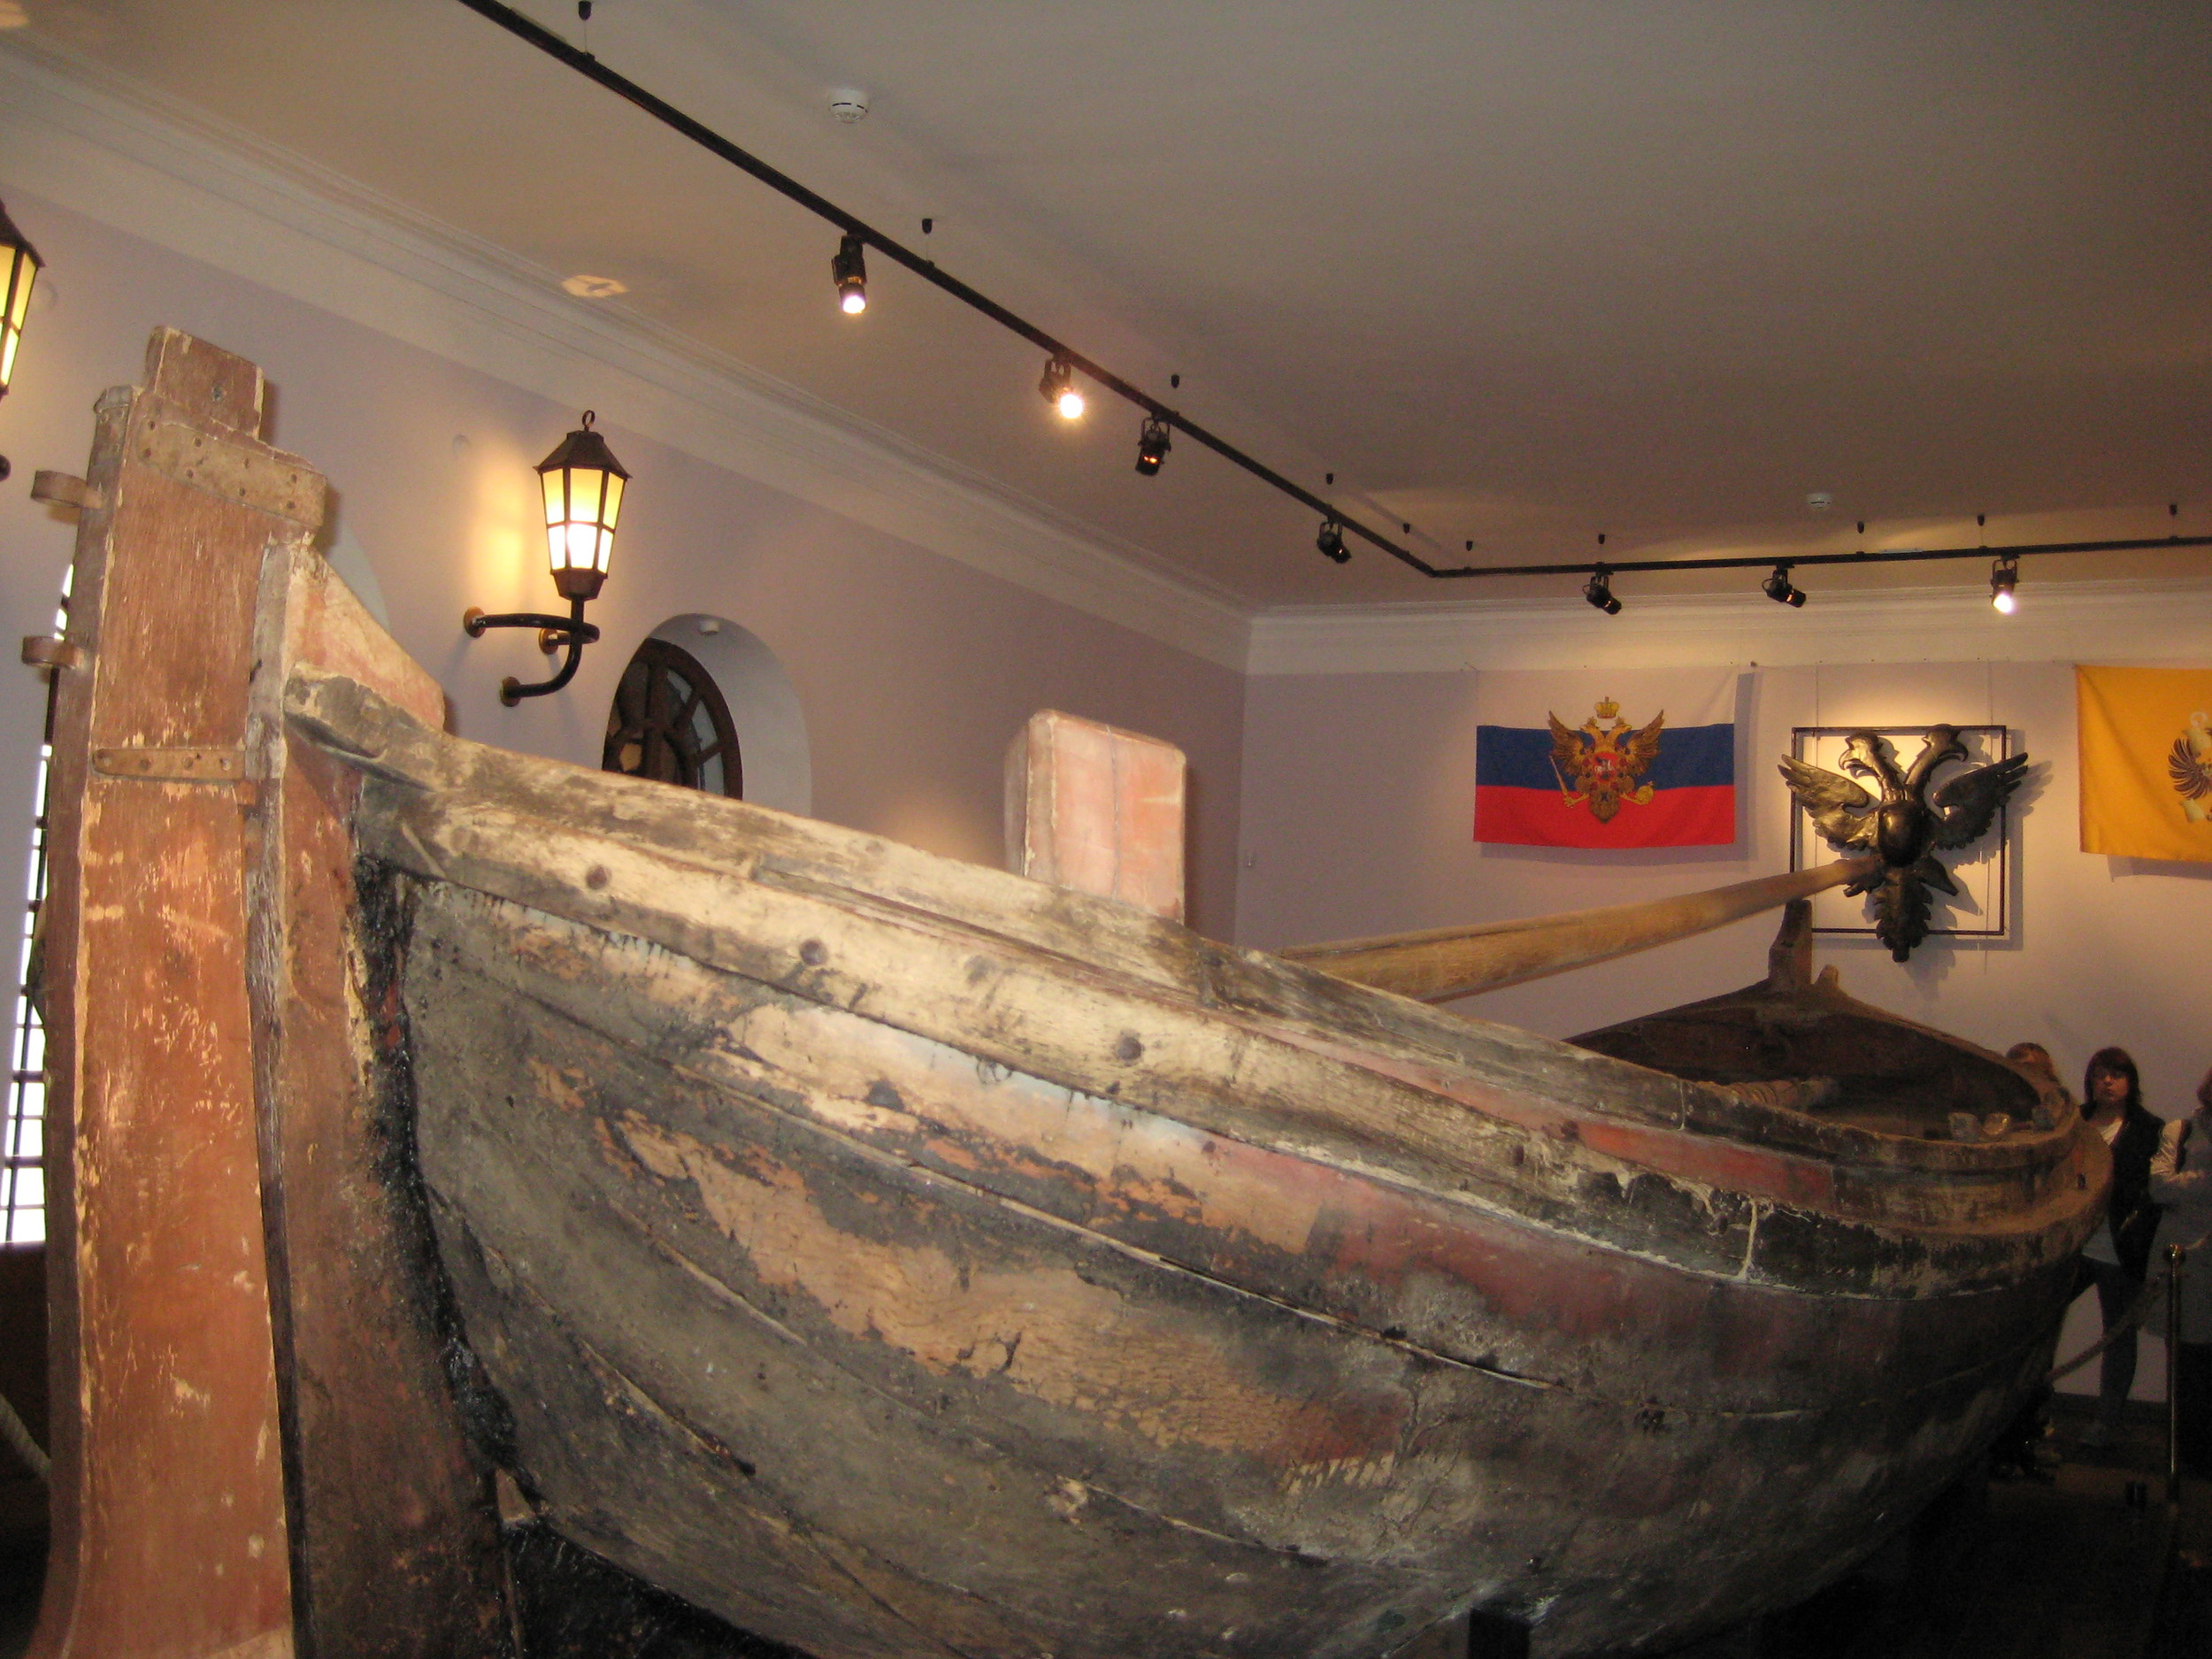 peter-the-greats-boat-in-the-botik-museum-in-pereslavl